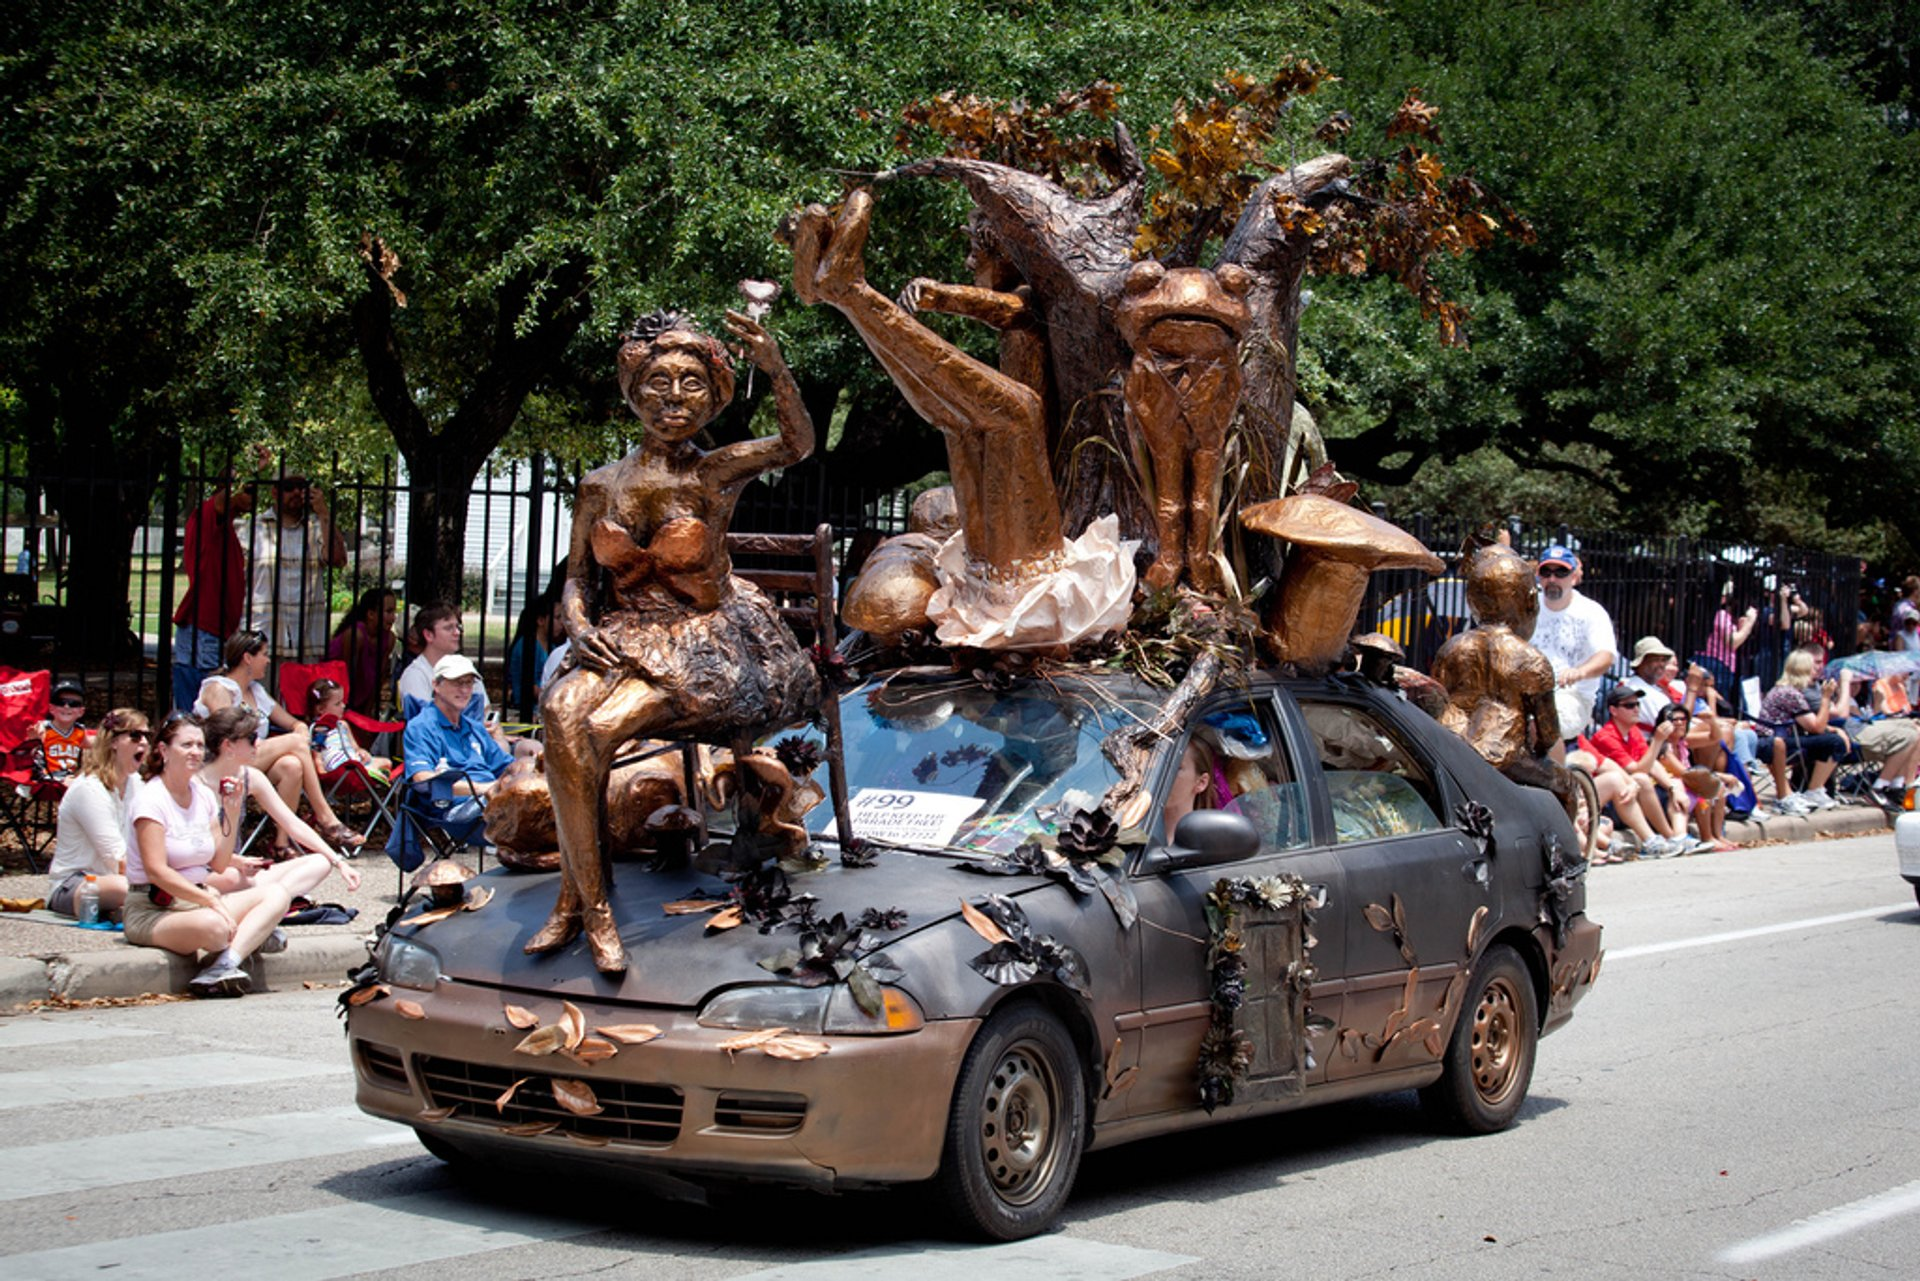 Best time for Houston Art Car Parade in Texas 2020